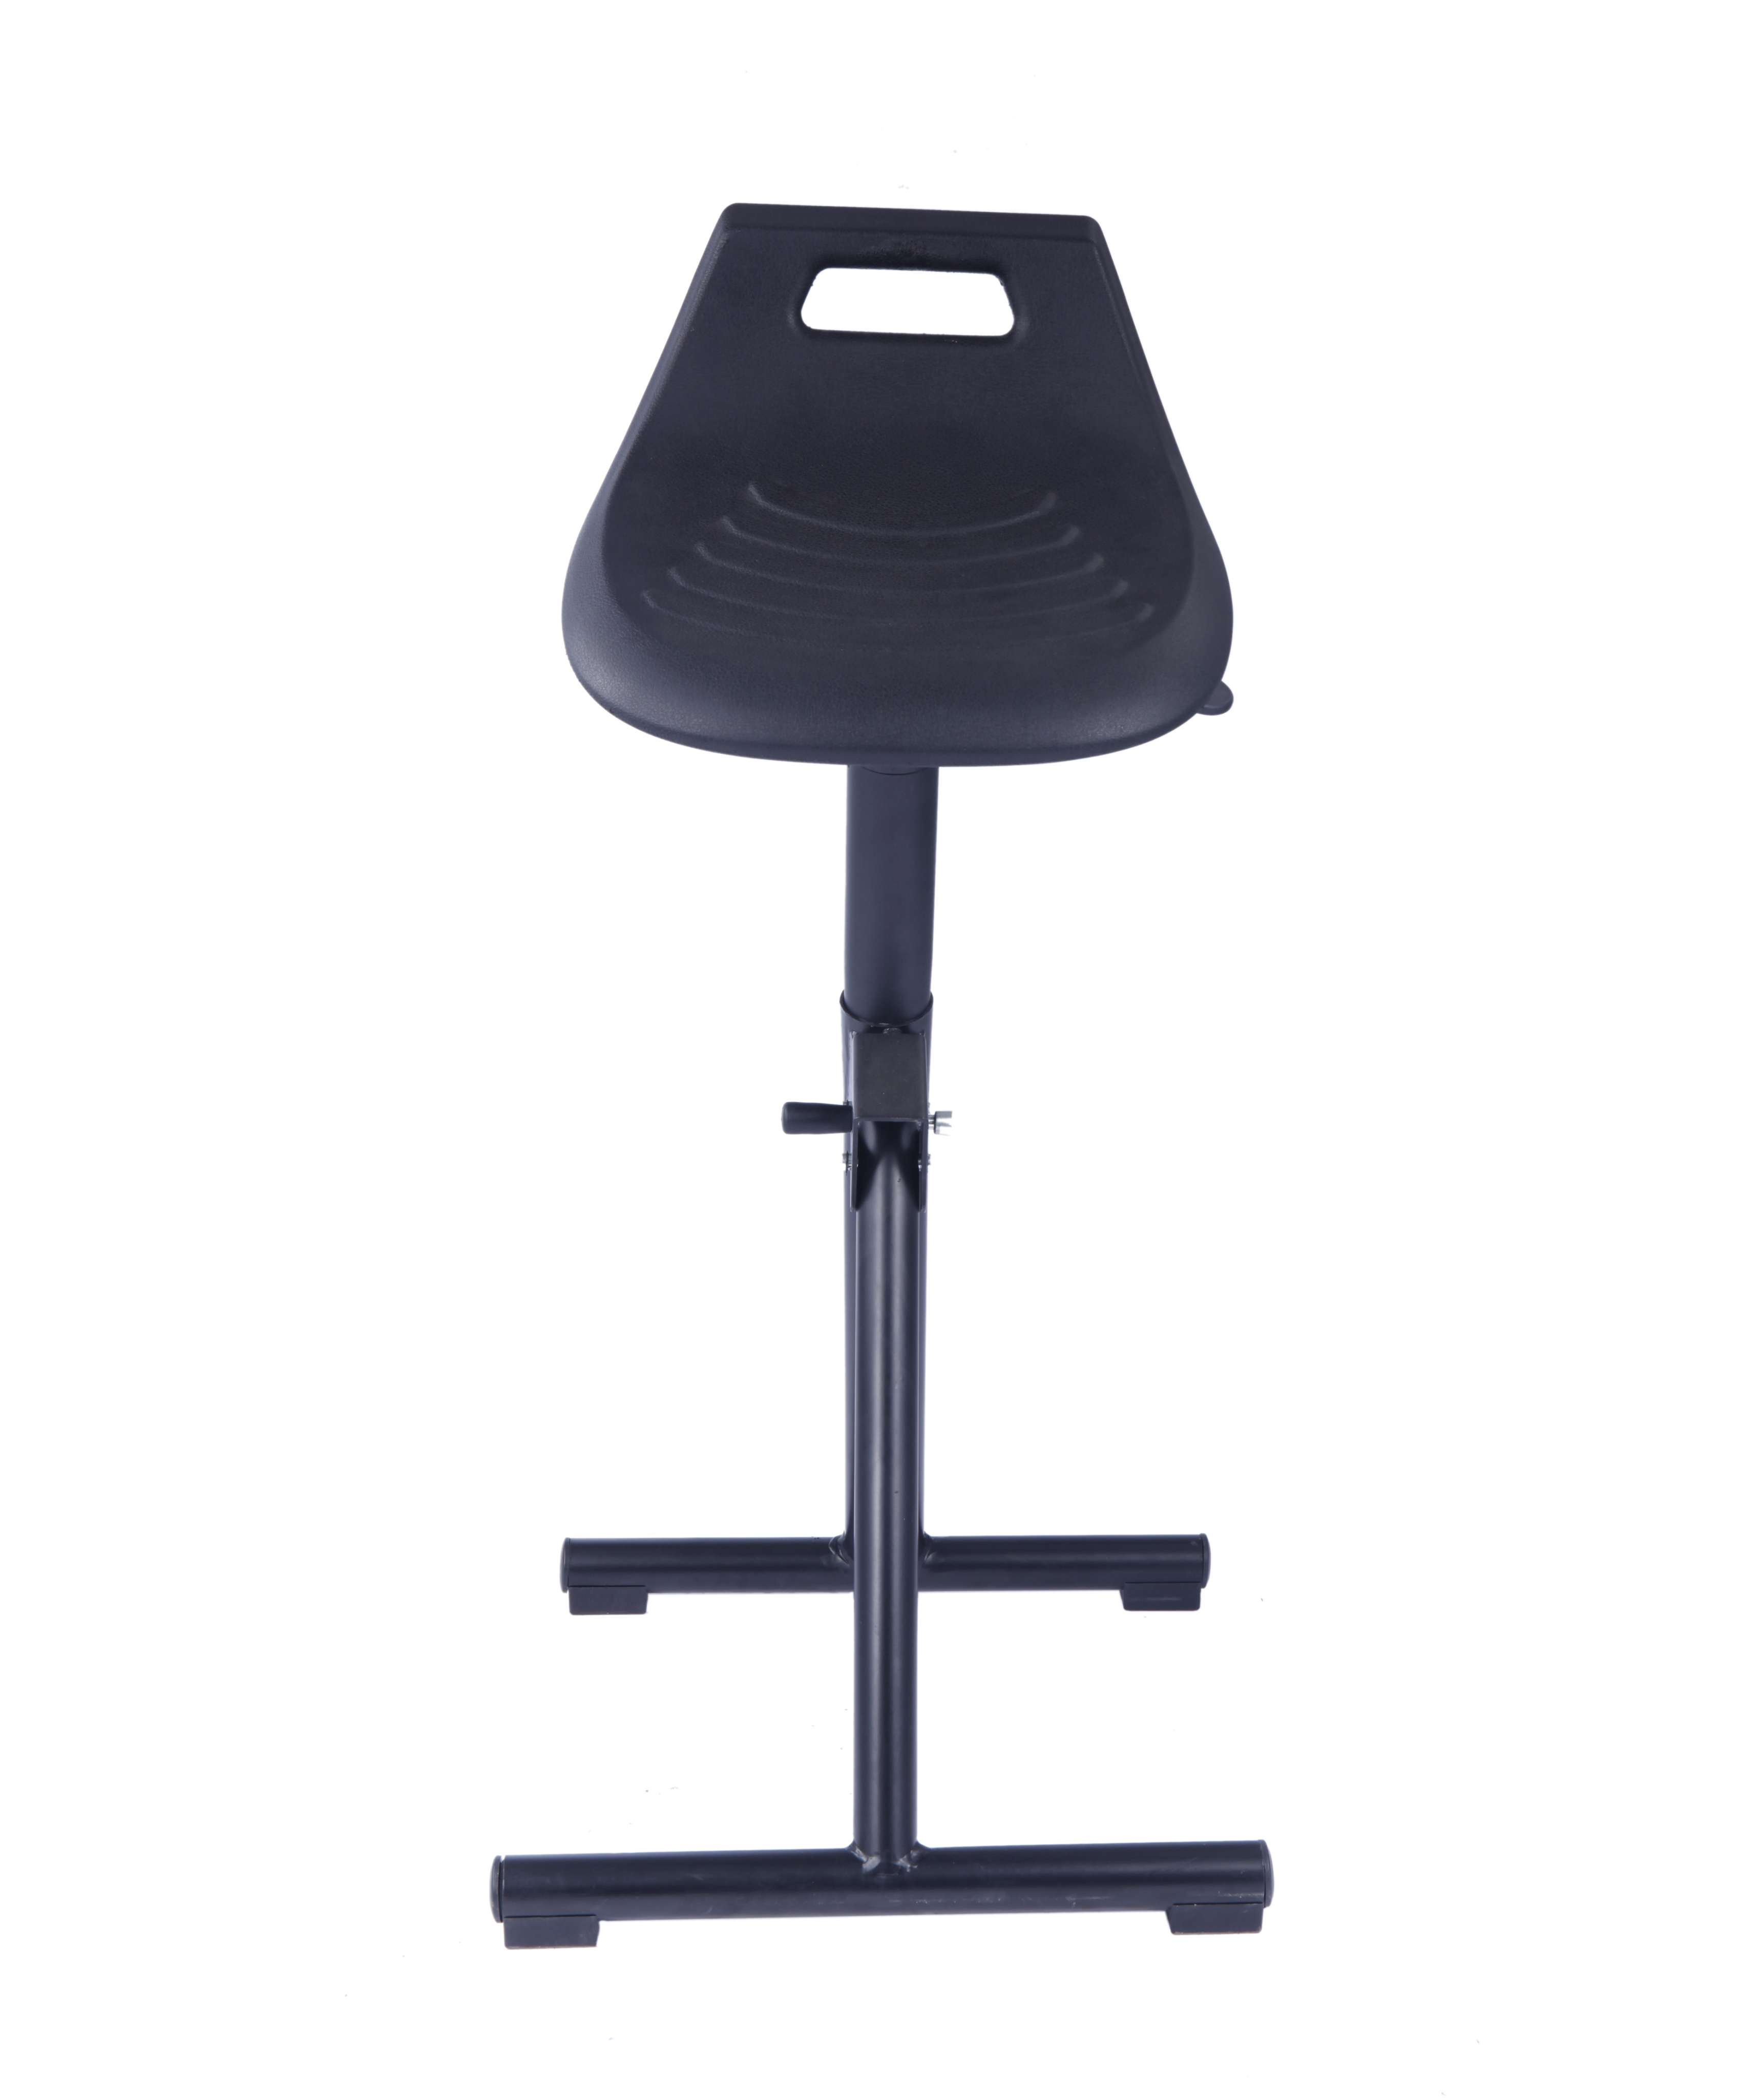 chair stand photos large round chairs for living room pu foam sit cleanroom